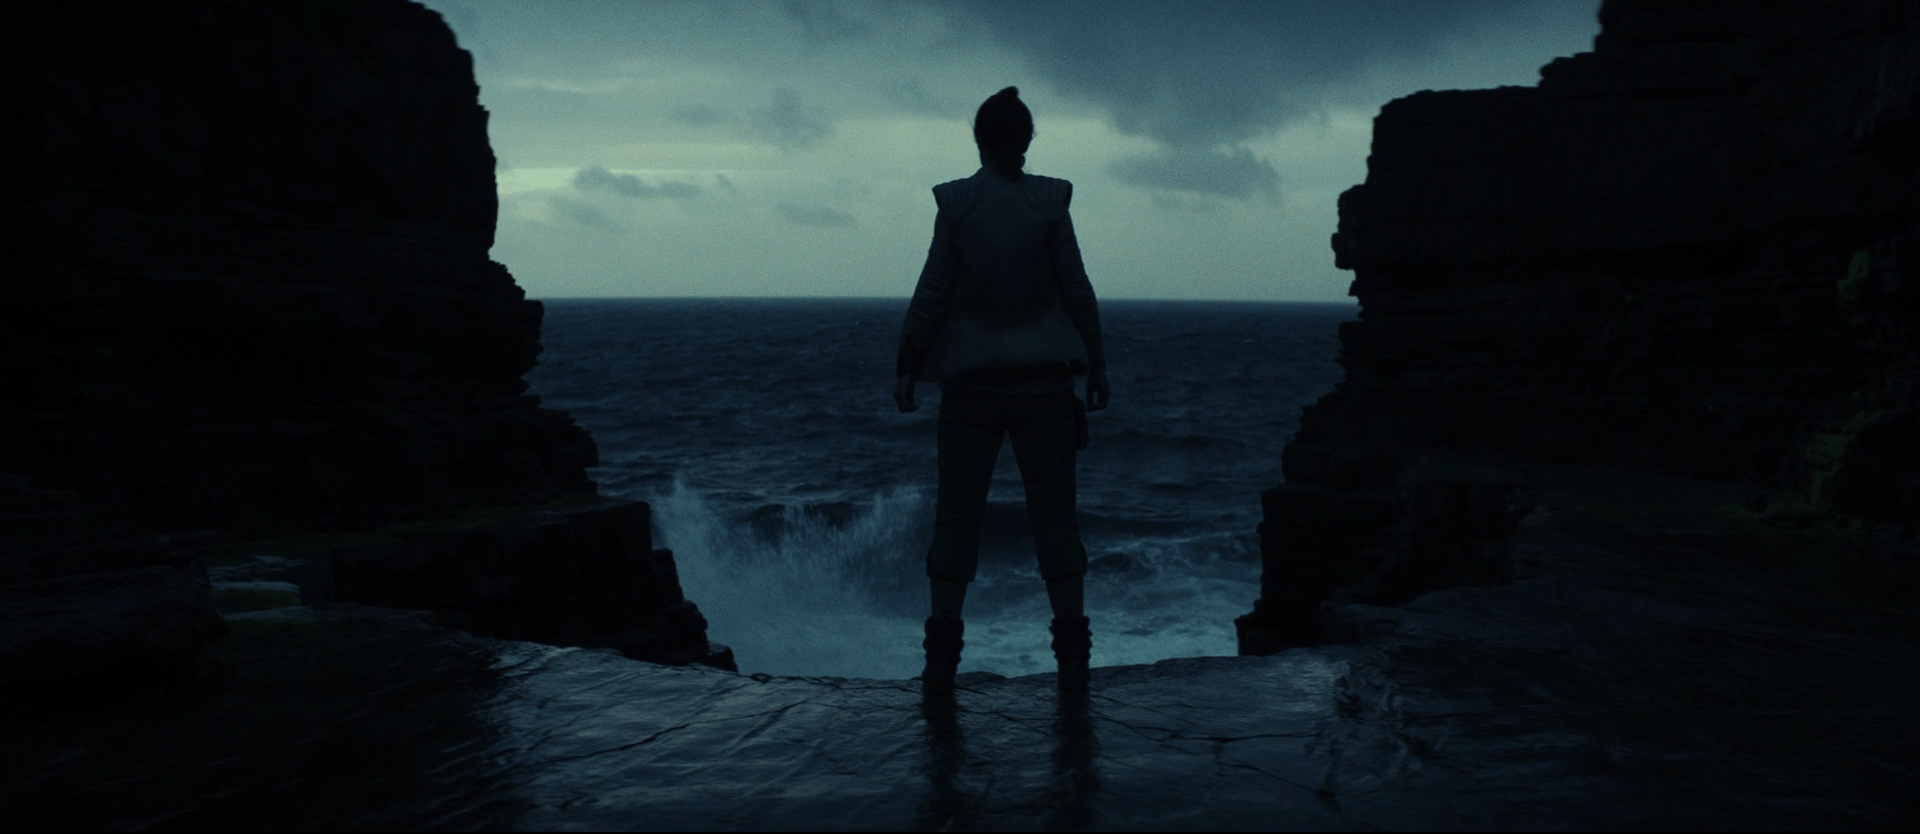 Theatrical poster discussion - The Last Jedi - Page 10 TLJ-22